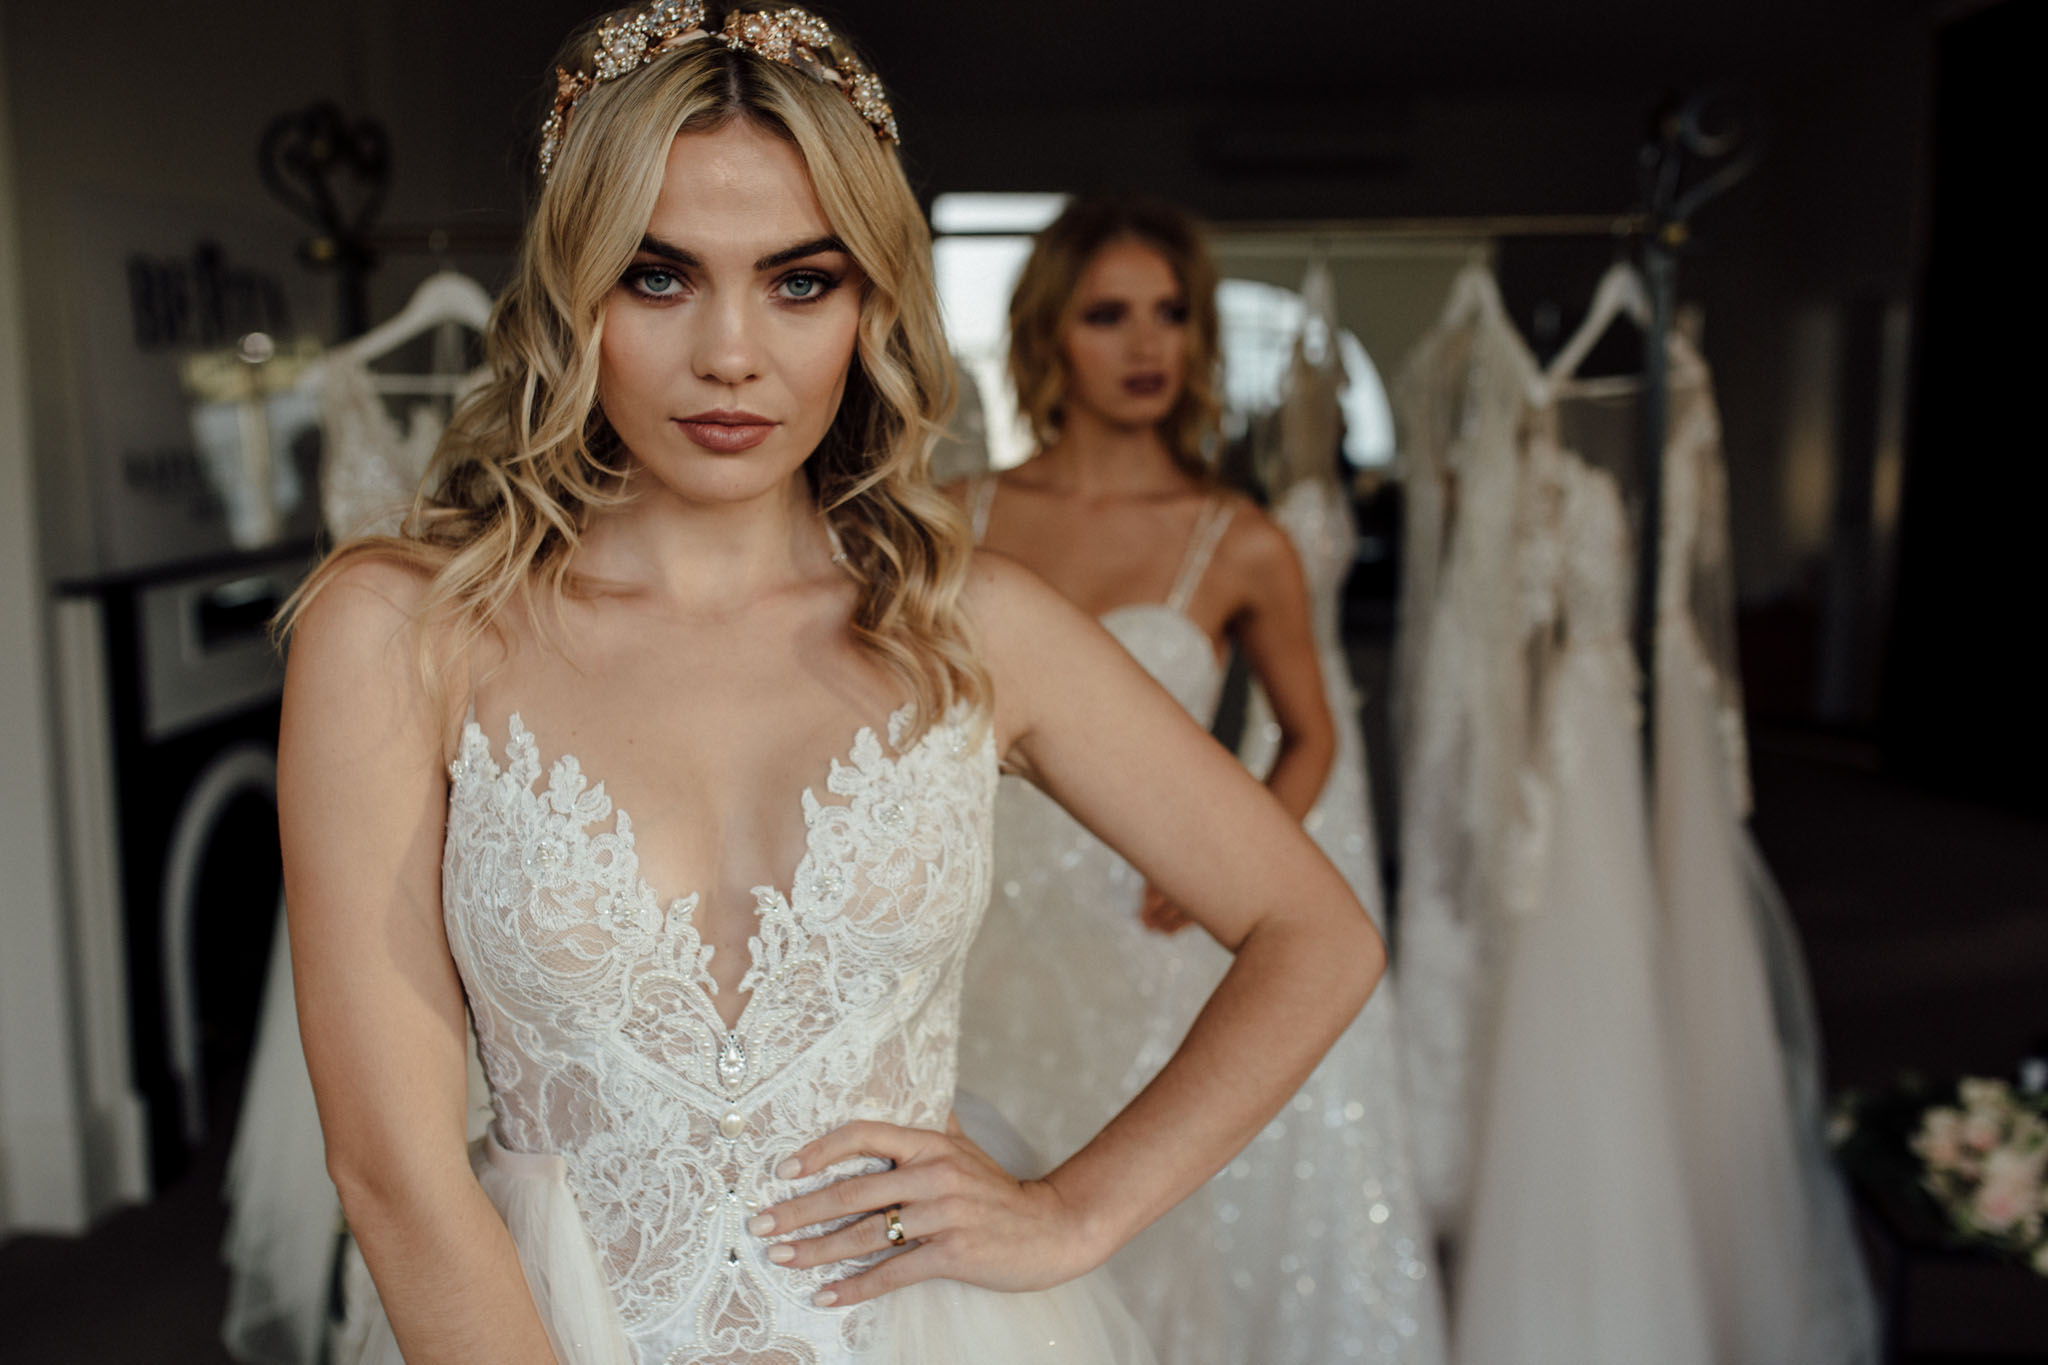 Berta Bridal photoshoot featuring style 16-25